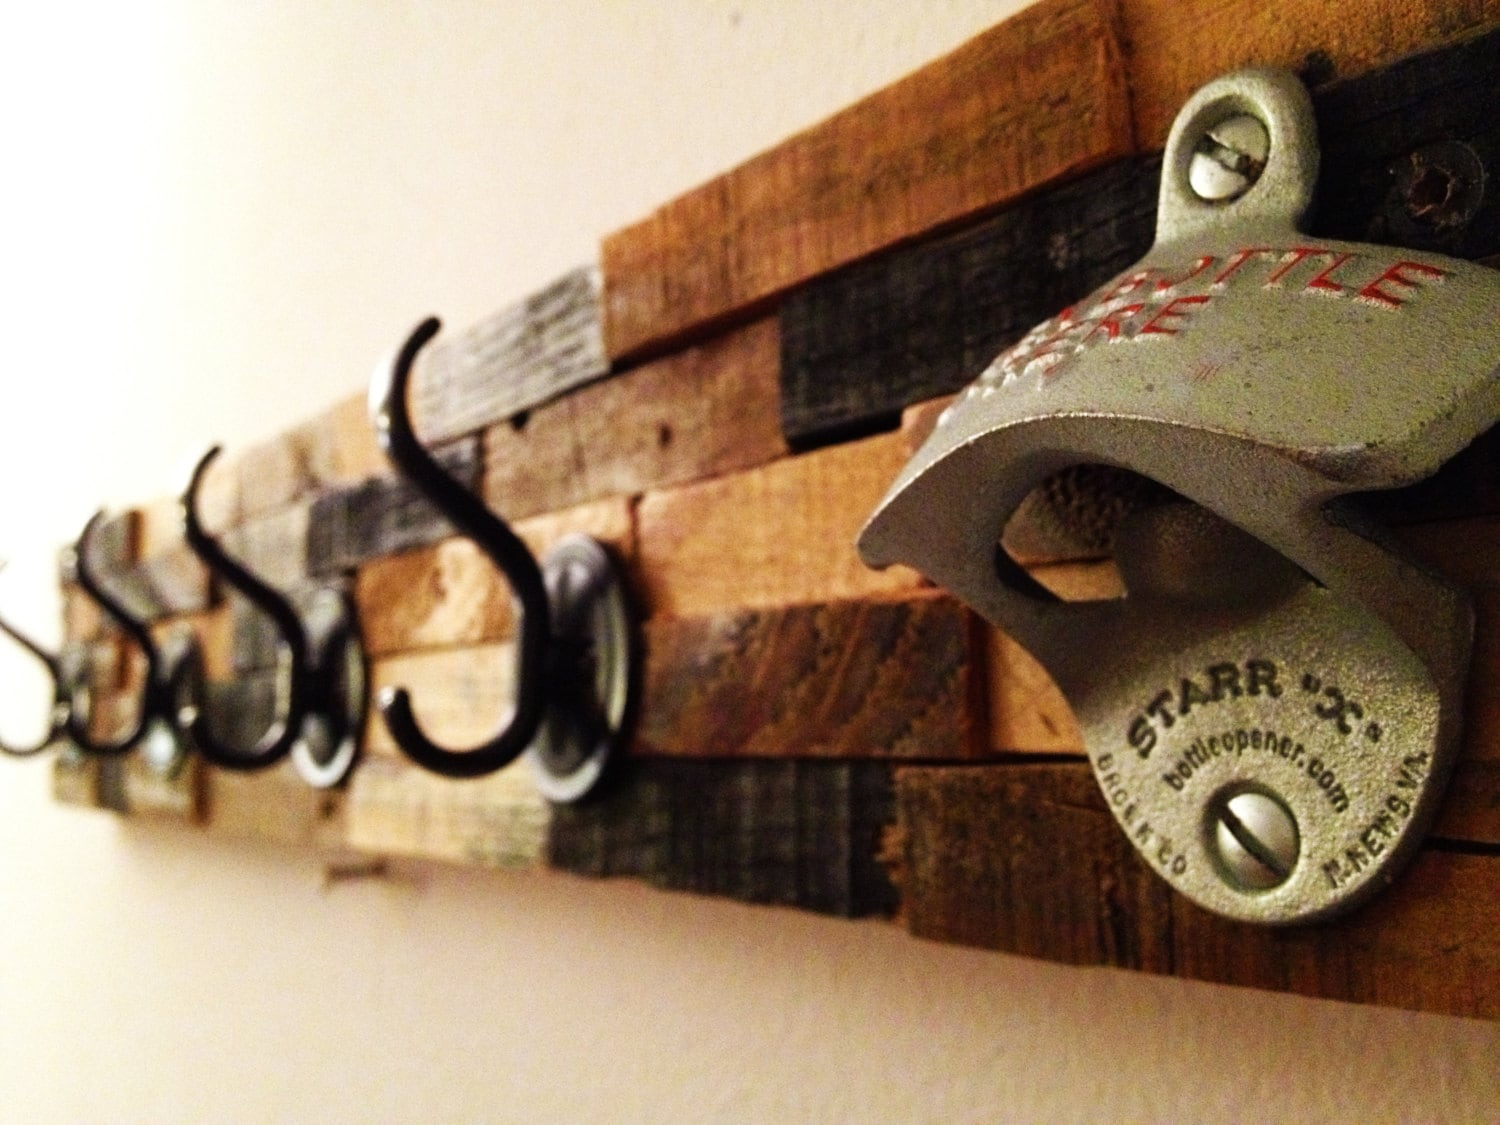 Rustic Coat Rack Bottle Opener: Come on in, hang your coat, and pop a brew. Great Conversation Piece. - Palletso